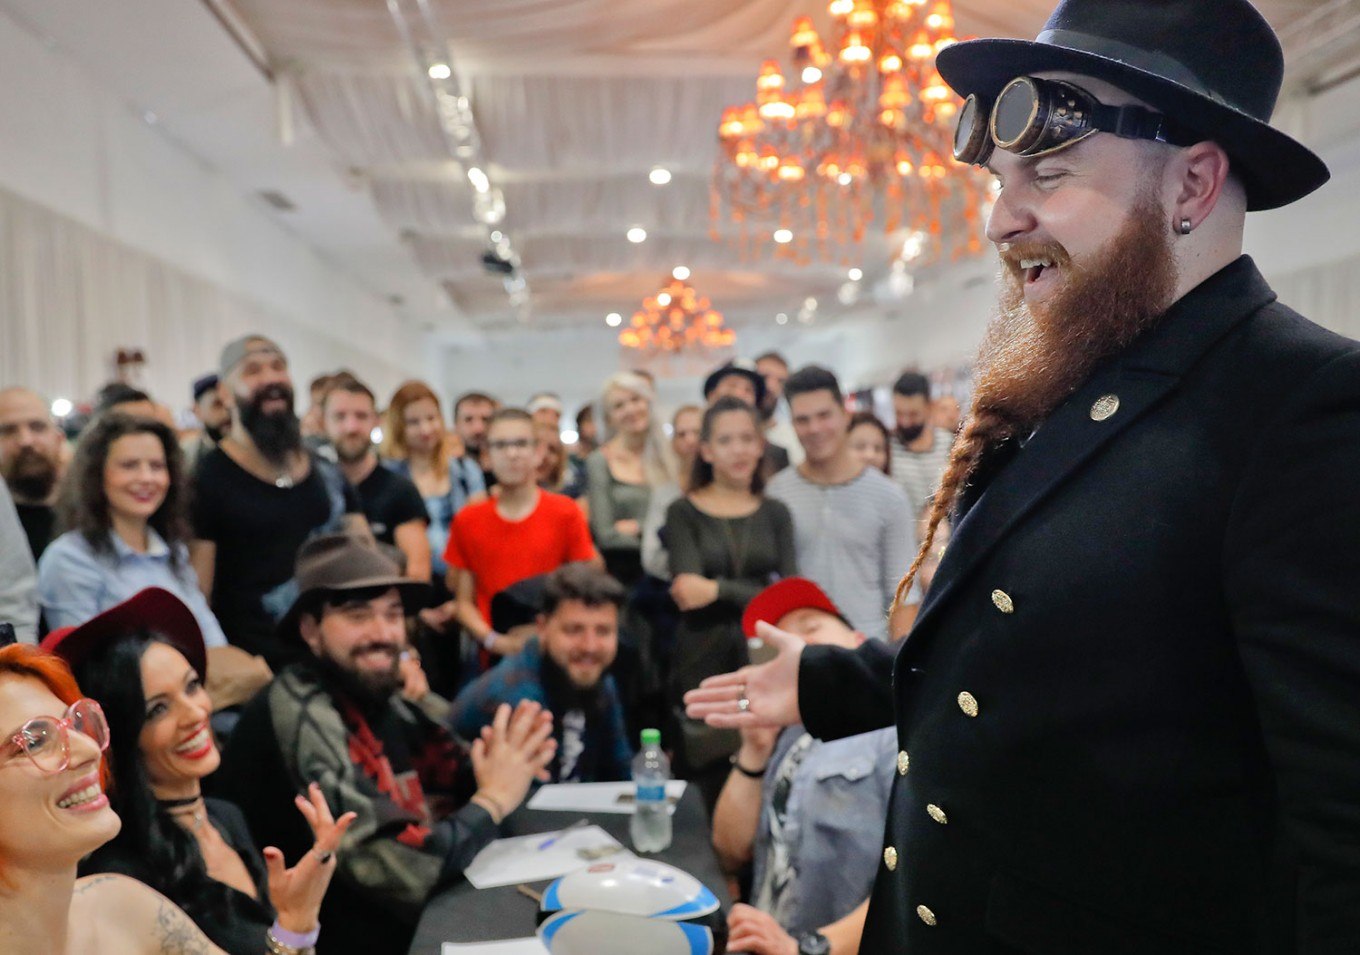 In this picture taken on Sunday, Oct. 16, 2016, a man smiles after having his beard evaluated by a jury during the National Competition for Beards and Mustaches which took place along with the International Tattoo Convention Bucharest 2016 in Bucharest, Romania. AP Photo/Vadim Ghirda